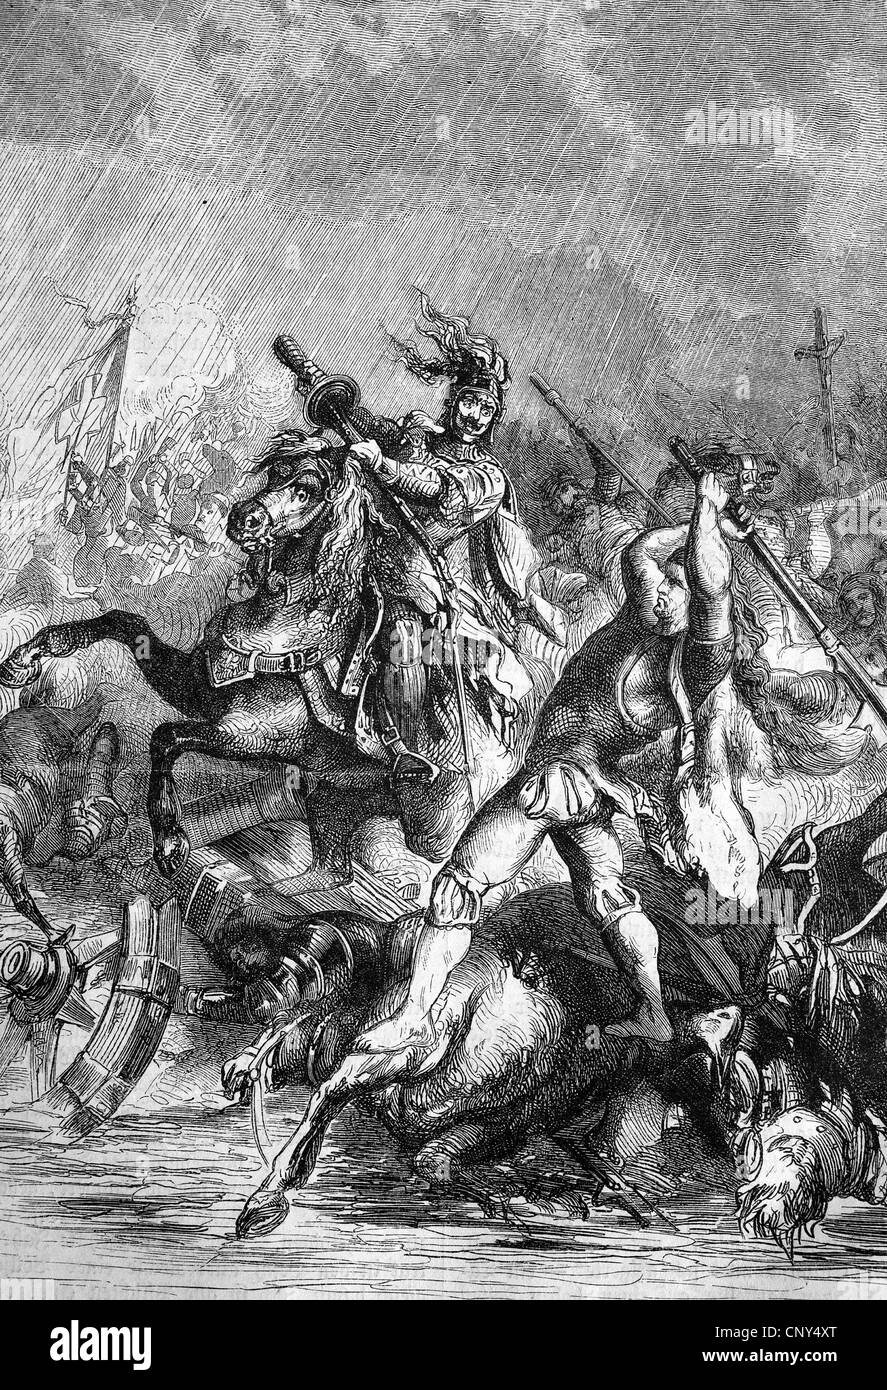 Reimer of Wimerstedt slays the squire Thomas Schleinitz. Defeated at the Battle of Hemmingstedt on 17 February 1500, - Stock Image